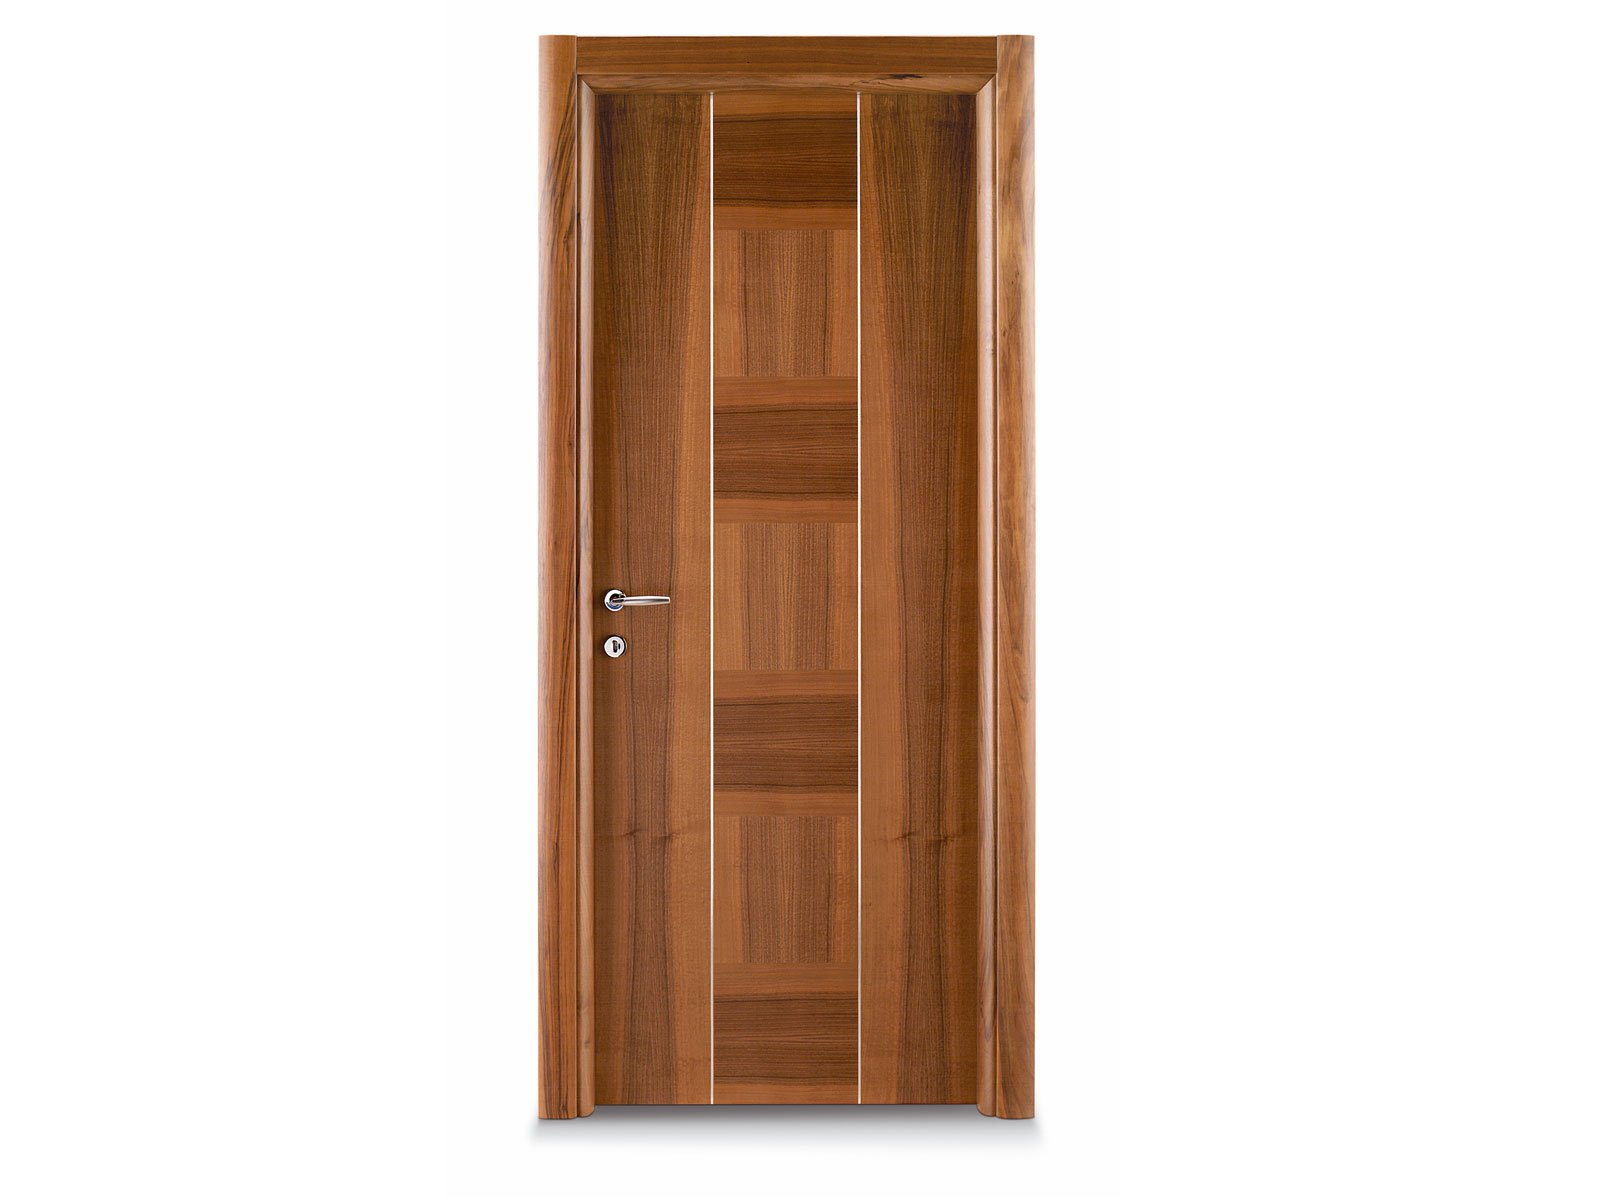 Hinged wooden door dada by ghizzi benatti for Hardwood doors